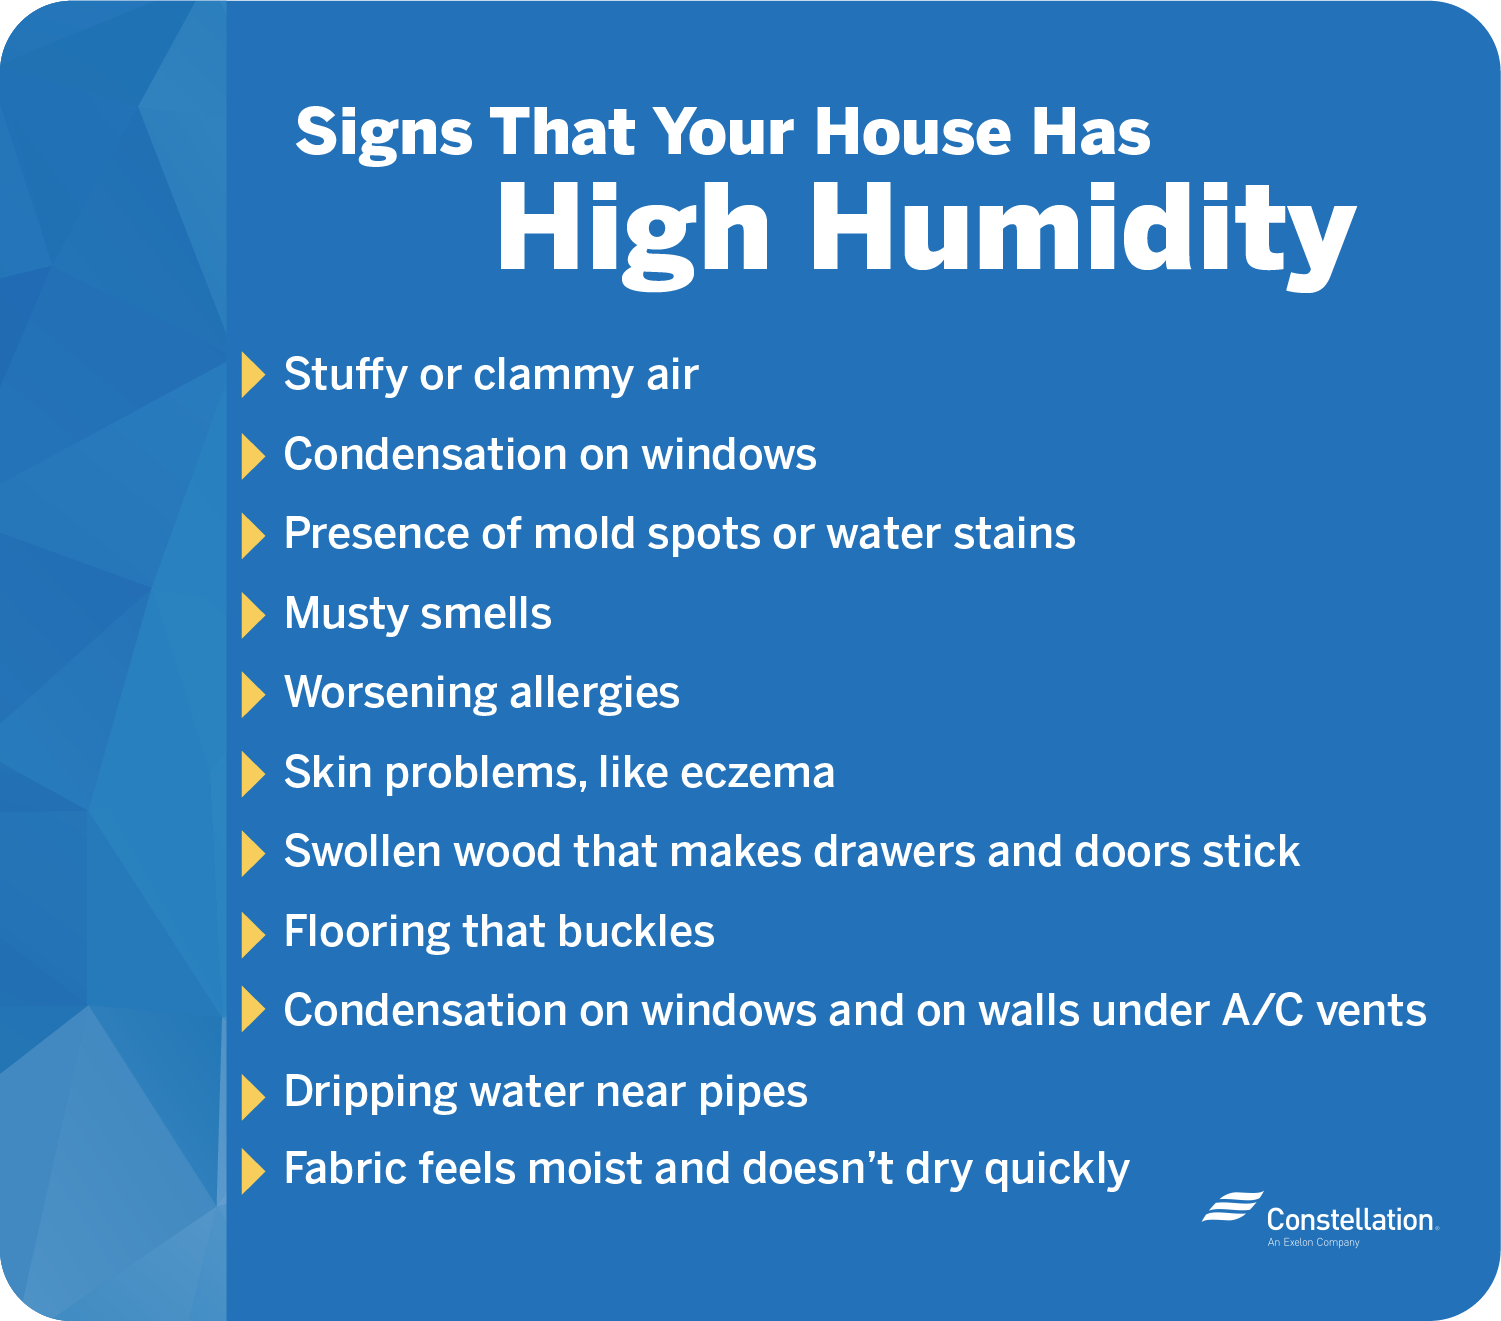 Signs that your house has high humidity